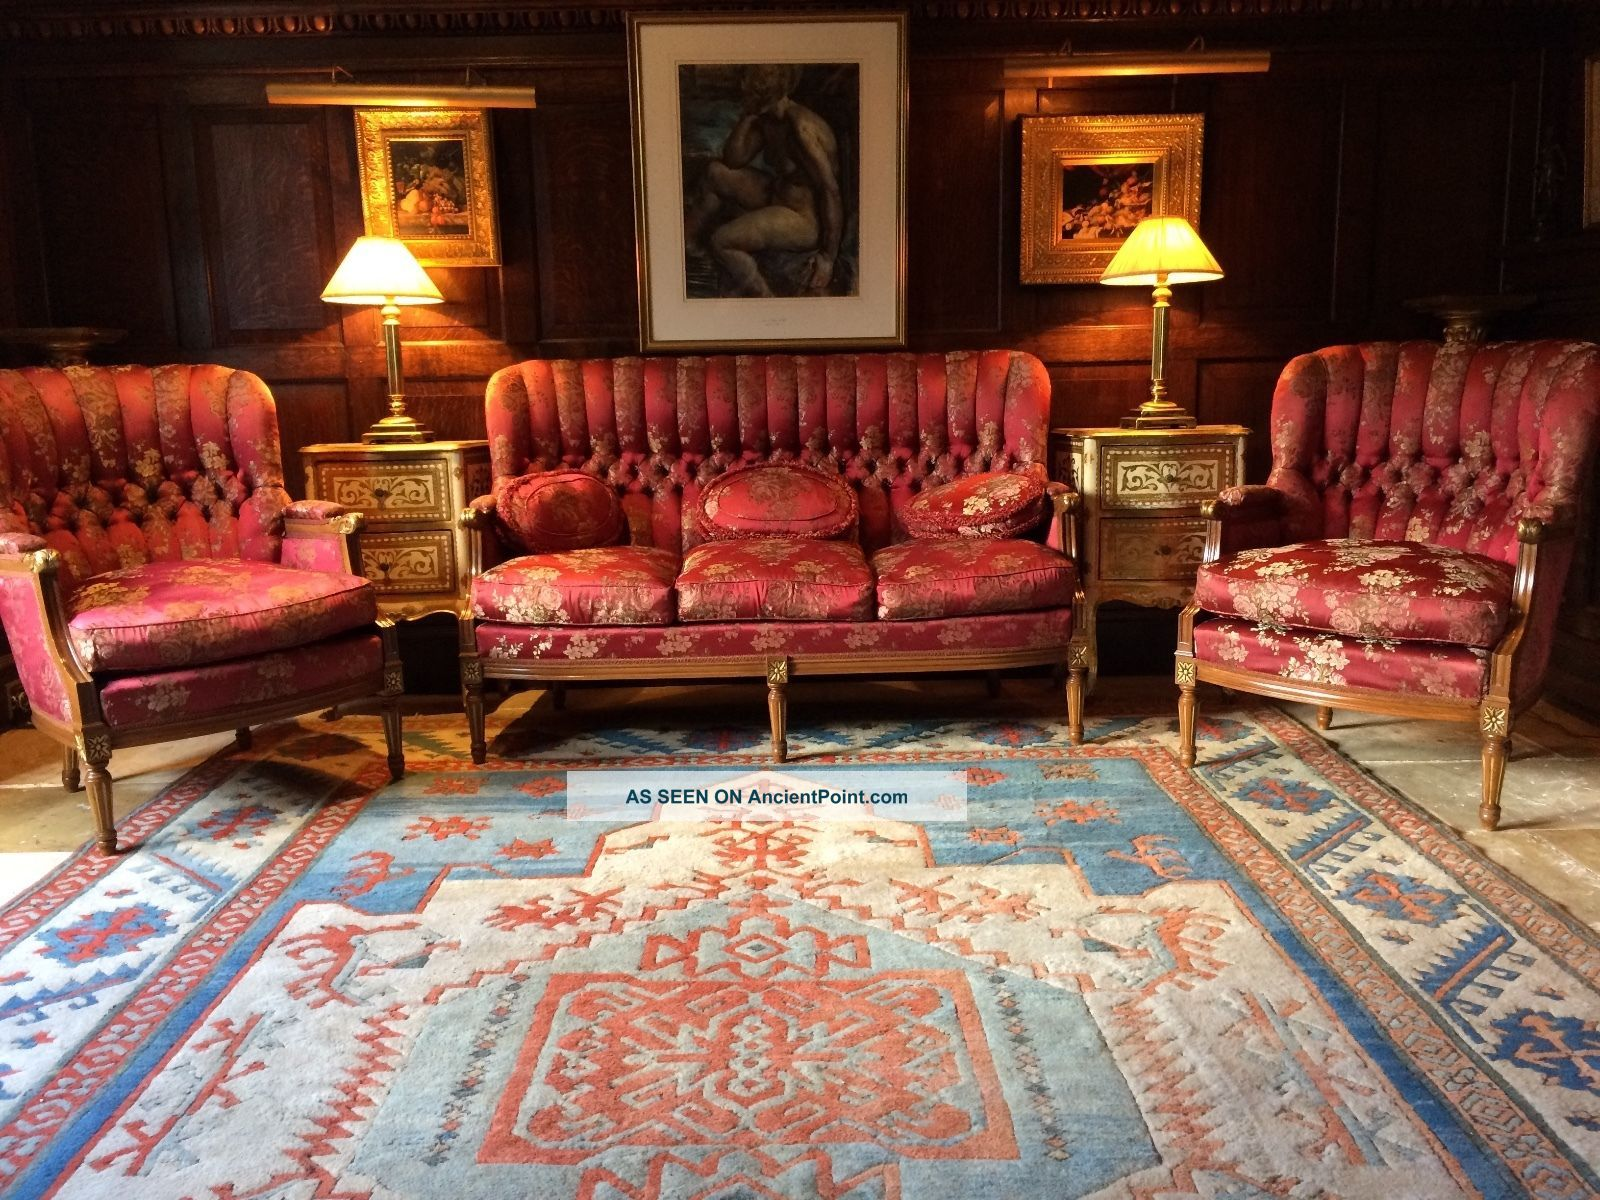 Stunning French Antique Style Louis Xv Sofa Suite Settee And Two Armchairs Wow 1900-1950 photo